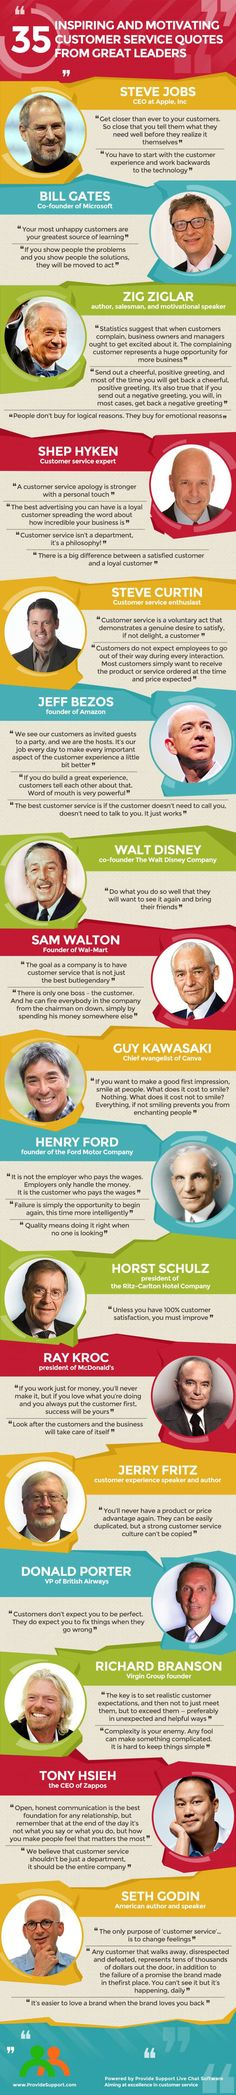 From Steve Jobs to Richard Branson, here are 35 inspiring quotes from some of the world's most admired business leaders.